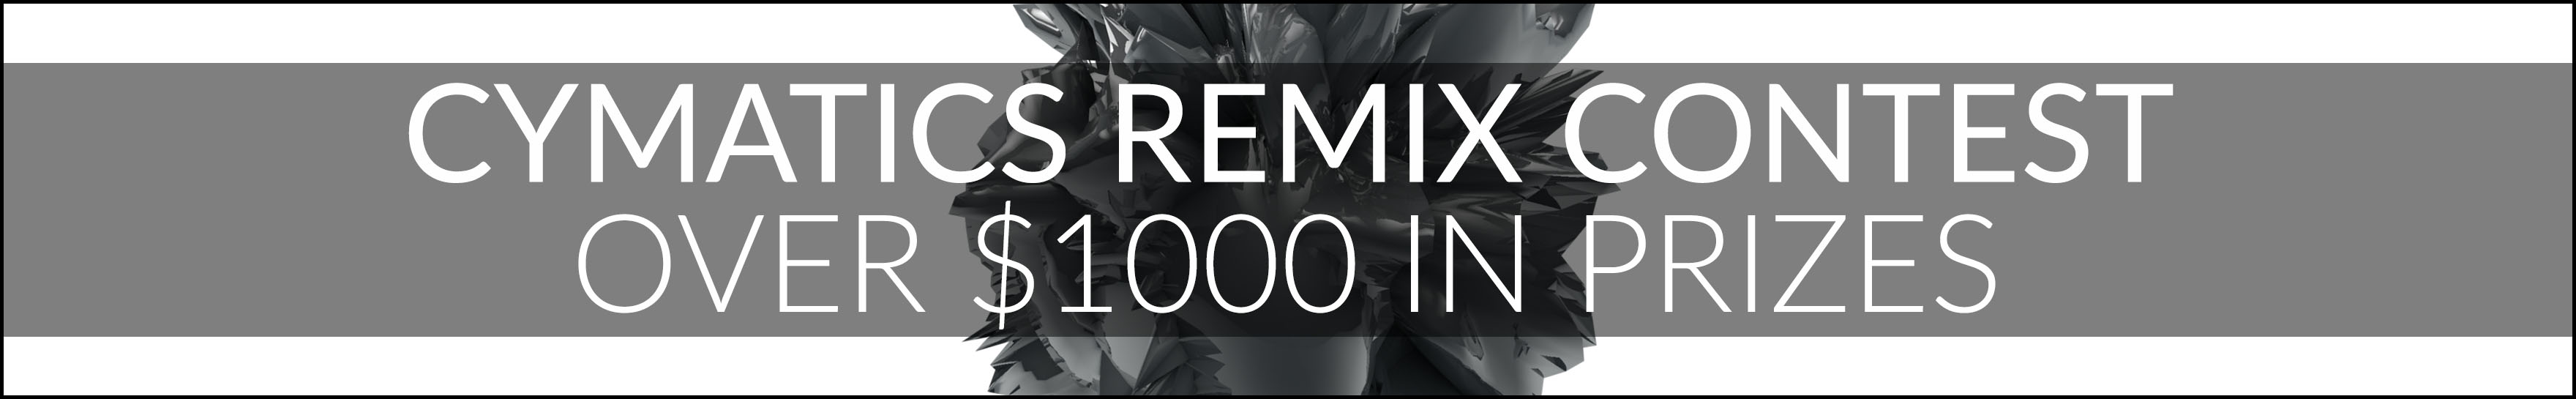 Cymatics Remix Contest